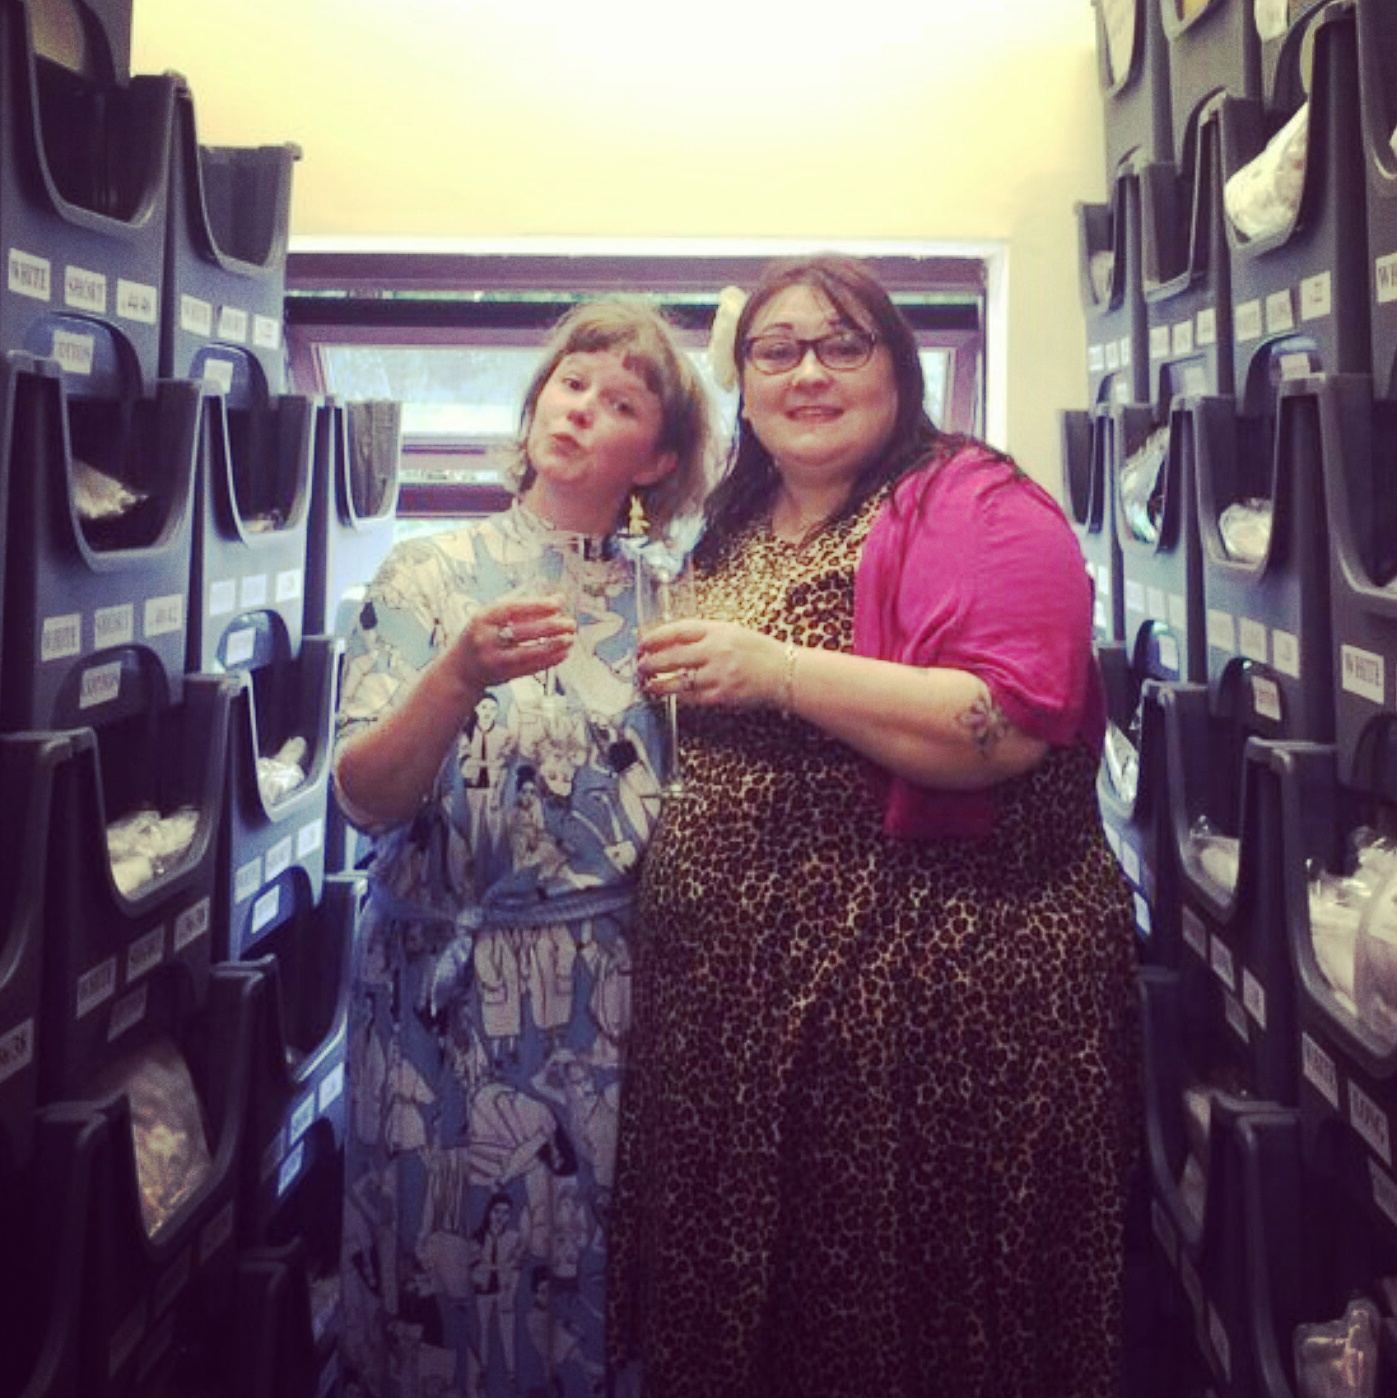 MEETING-THE-BIG-TIGHTS-COMPANY plus size tights plus size hold ups plus size underwear